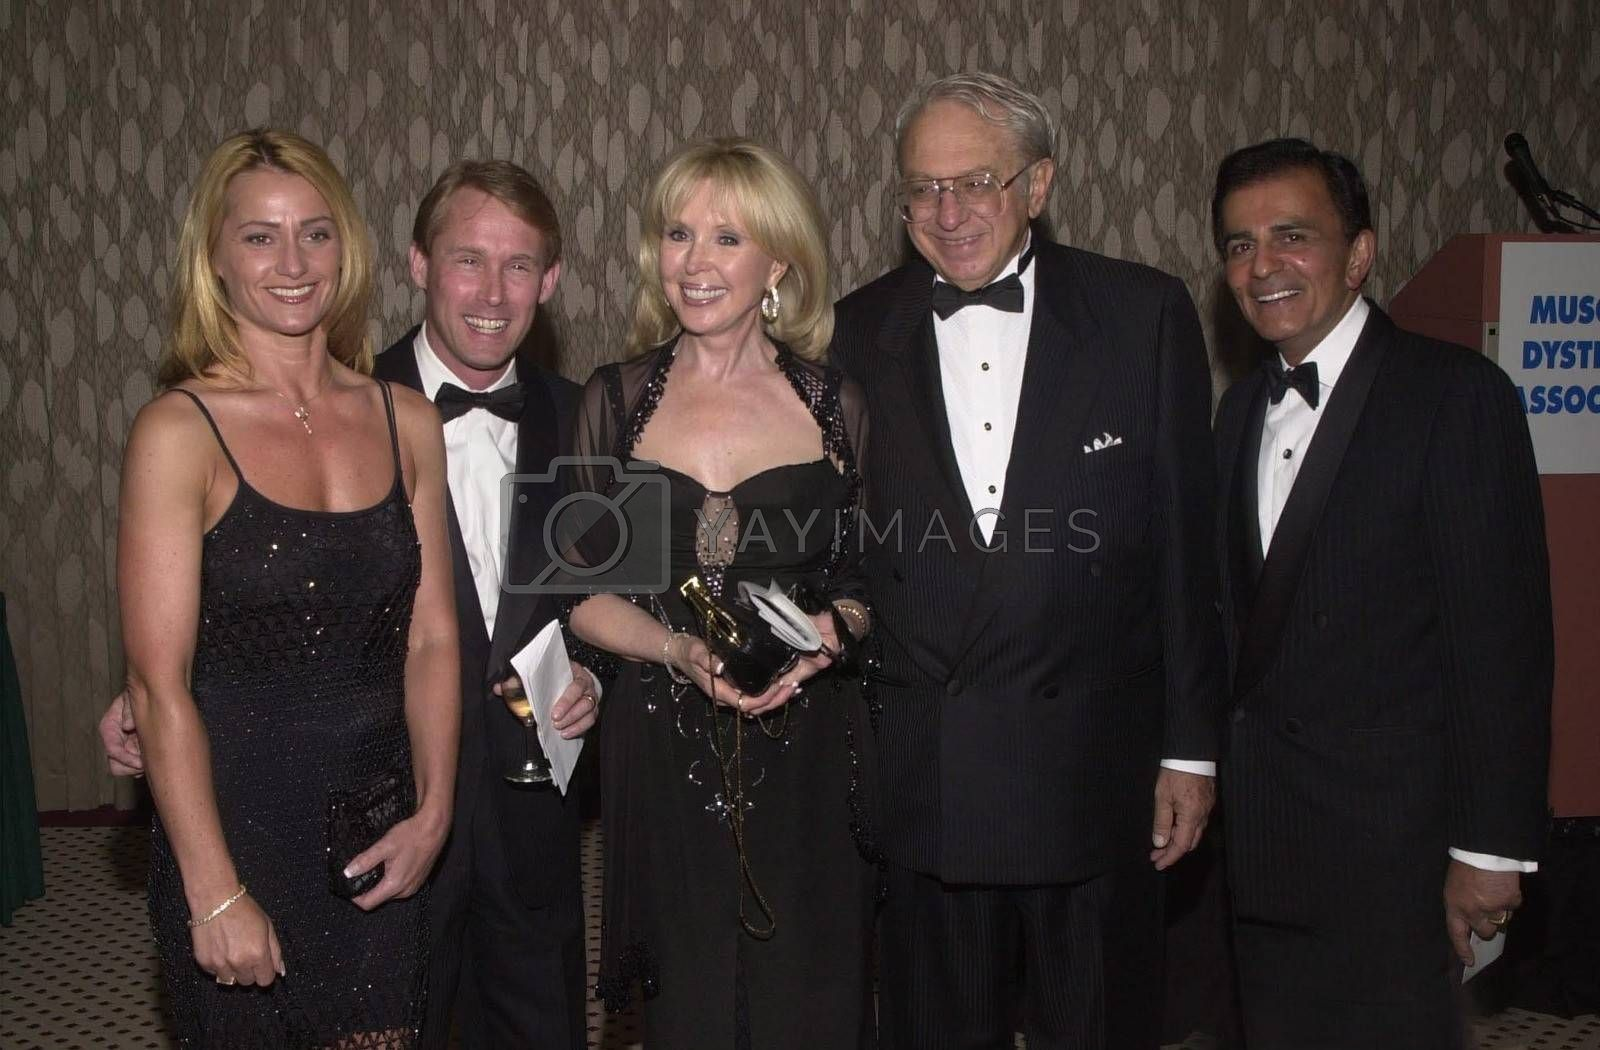 Nadia Comaneci, Bart Conner, Joey Masry, Ed Masry and Casey Kasem at the Night Under The Stars Dinner-Dance to raise money for MS. Beverly Hills, 04-29-00